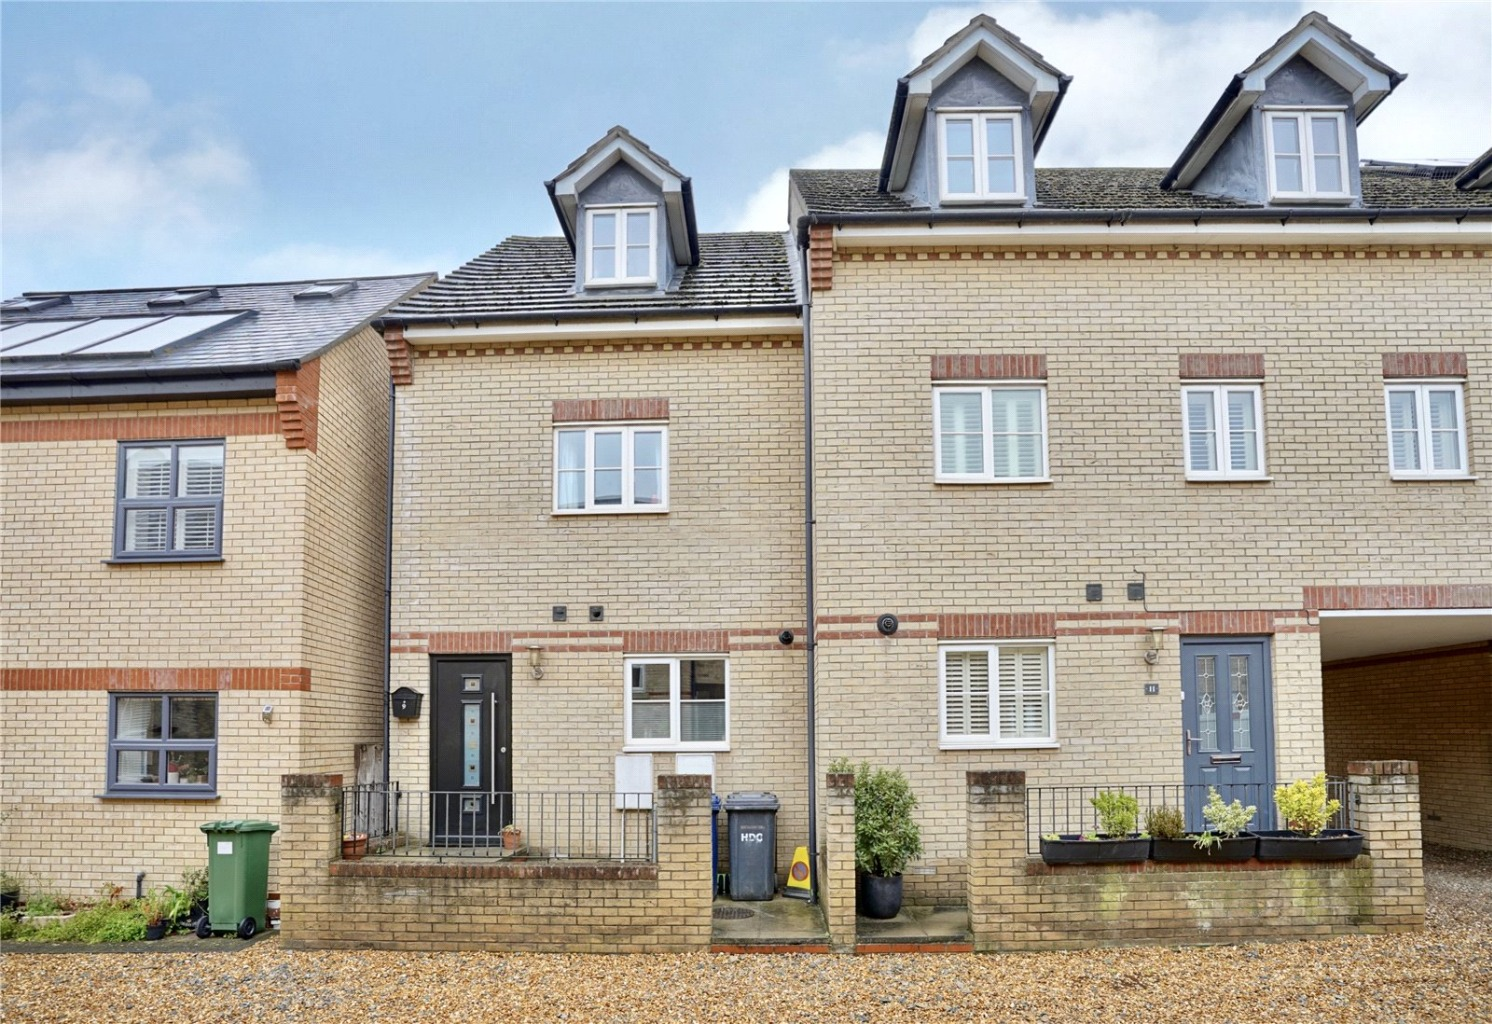 3 bed end of terrace house for sale in West Street, St. Neots, PE19